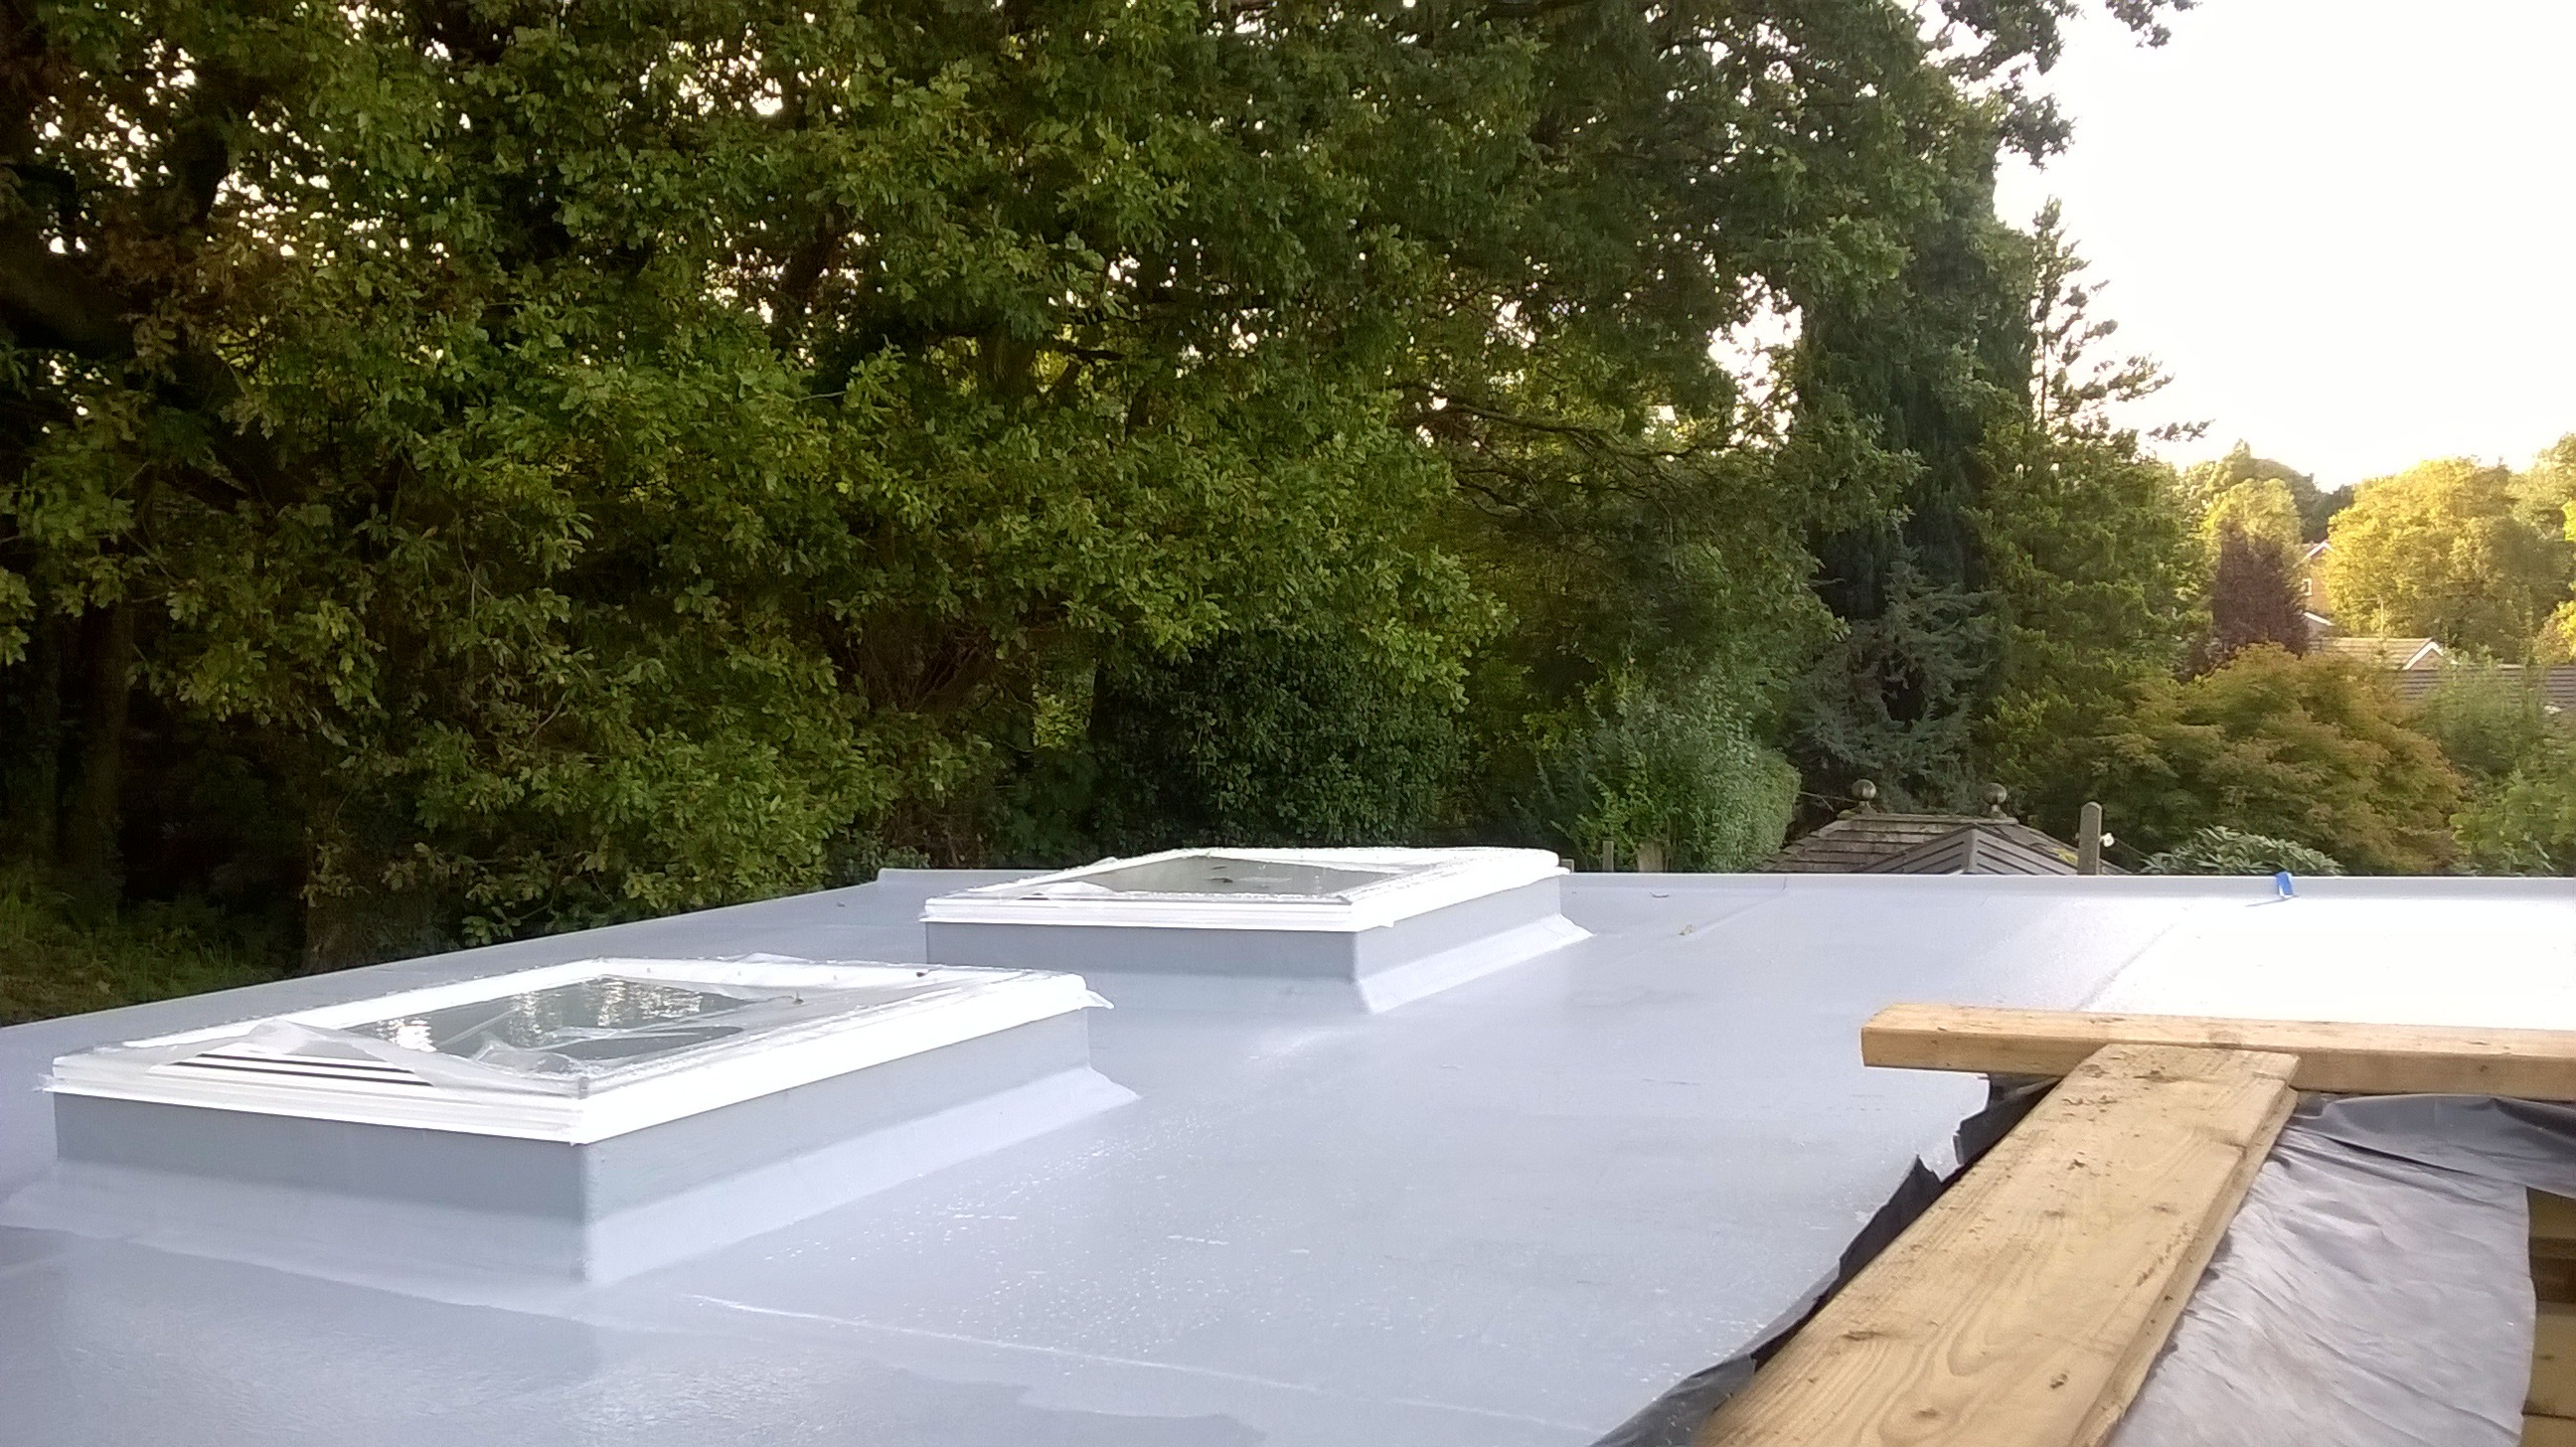 Fitting skylights into a flat roof